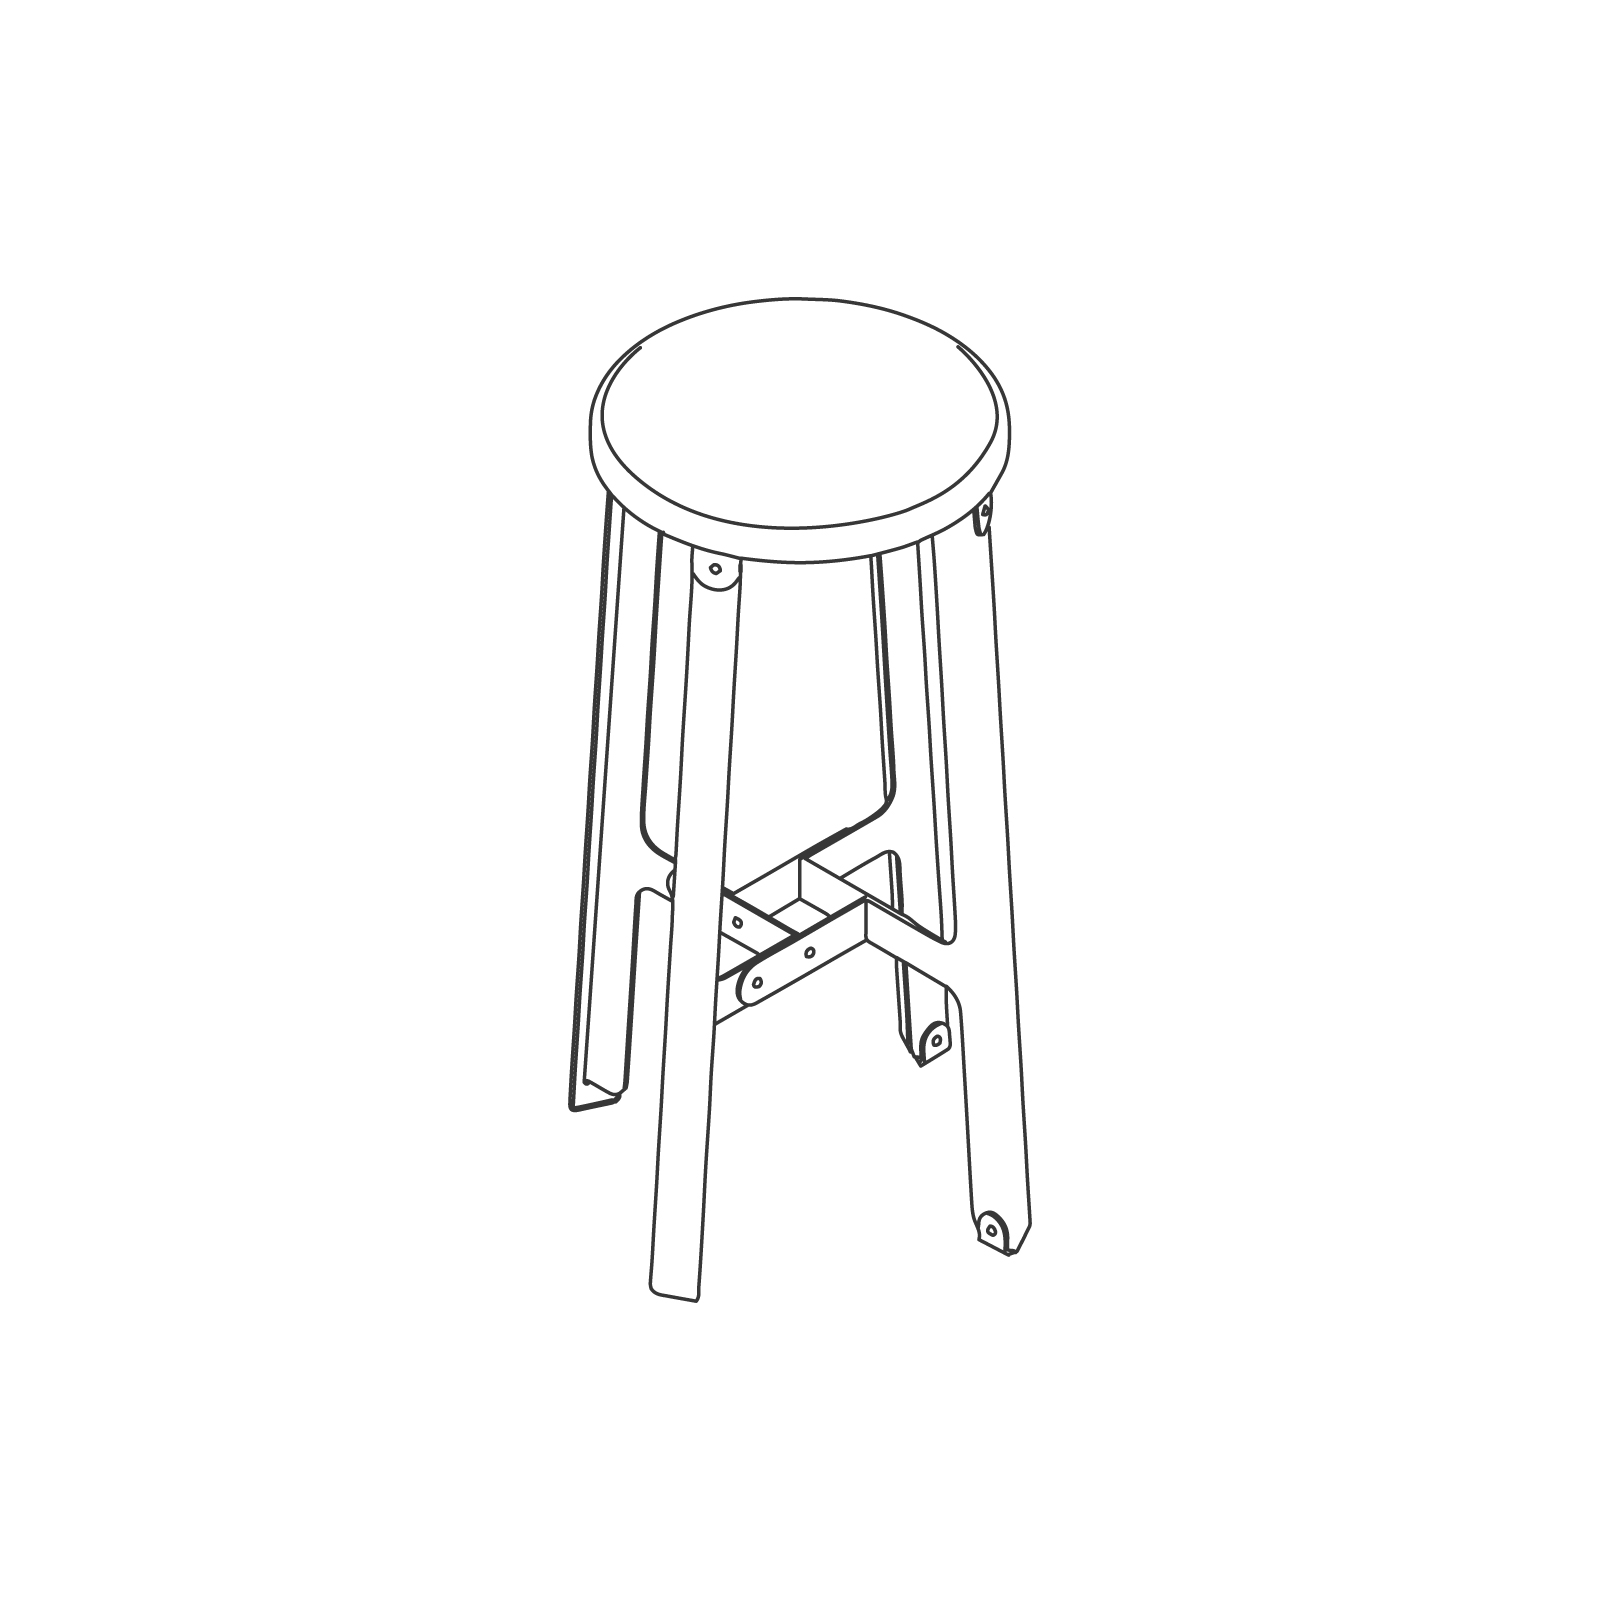 A line drawing of Construct Stool–Bar Height.